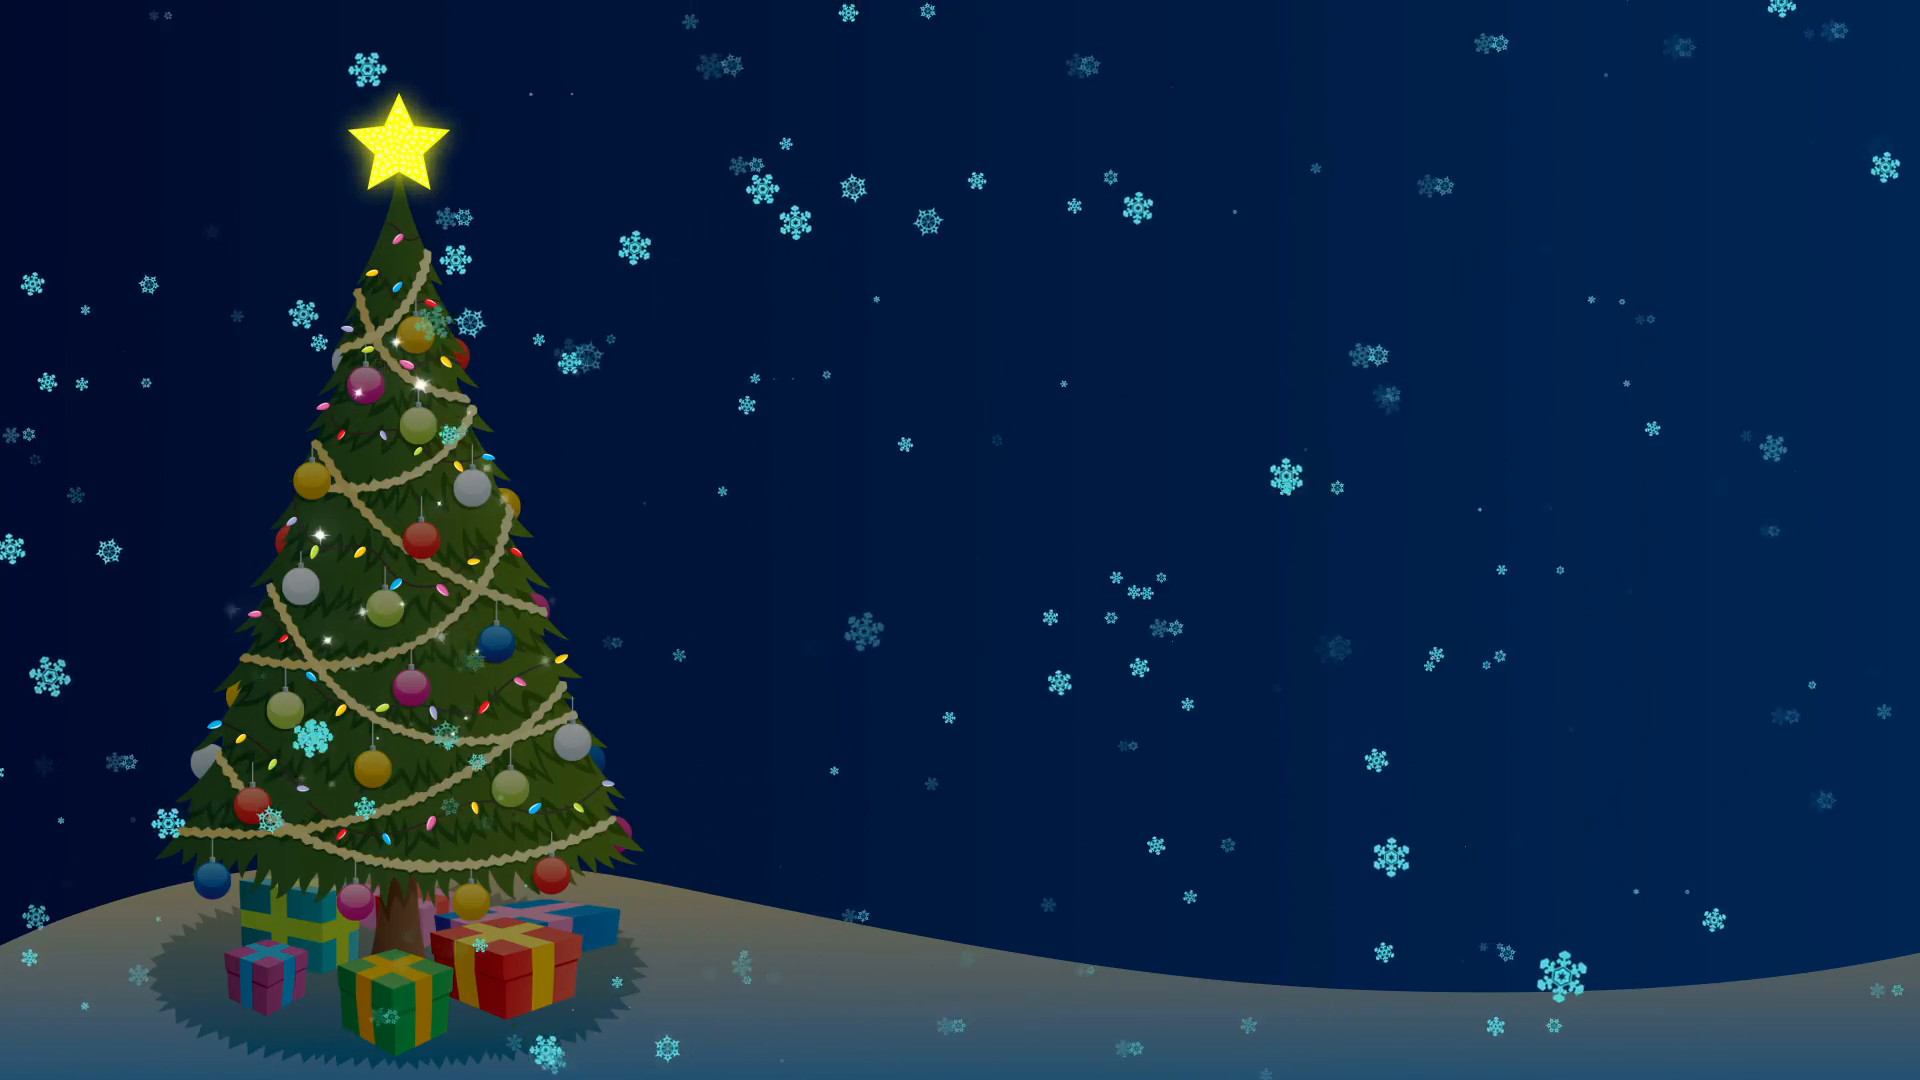 Christmas Background Pic.Background Christmas Images 53 Images